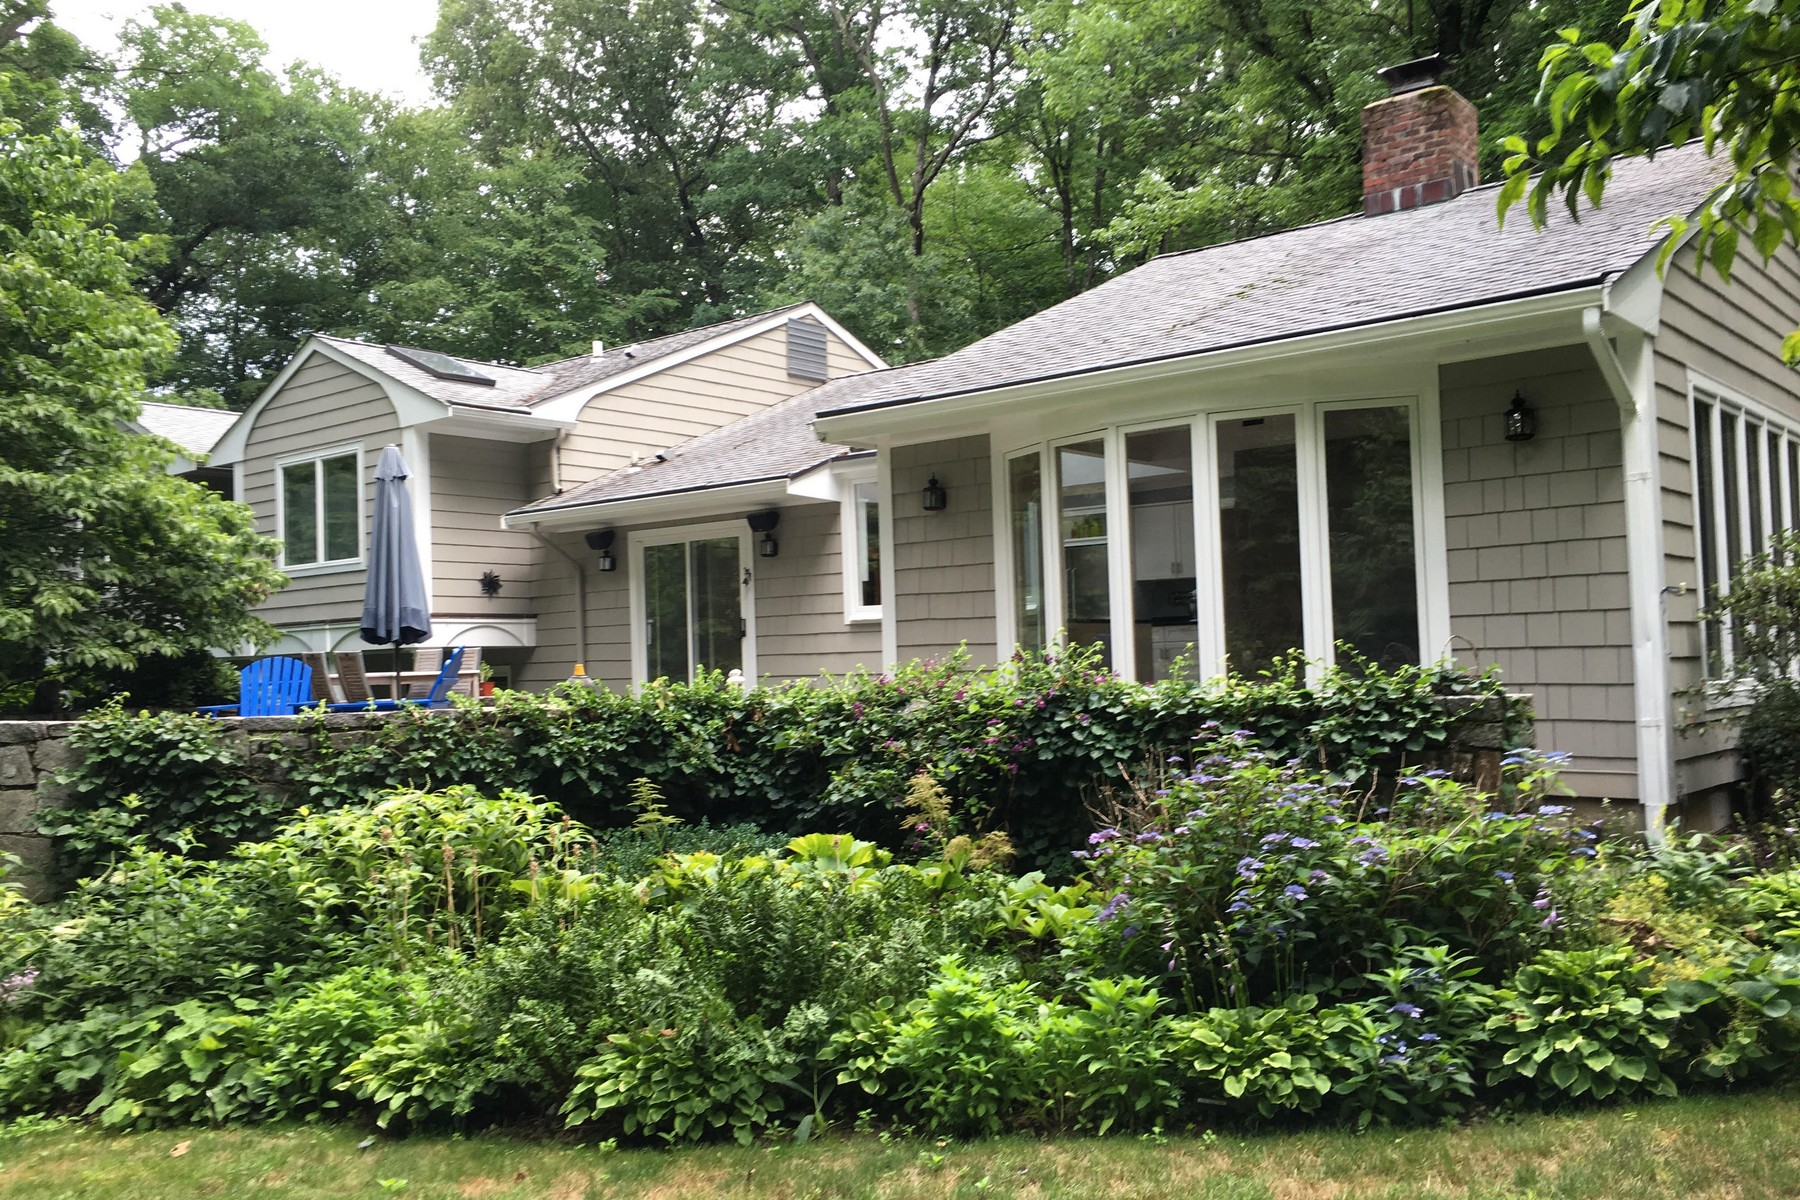 Single Family Home for Sale at Contemporary Flair! 54 Huckleberry Hill Road New Canaan, Connecticut, 06840 United States